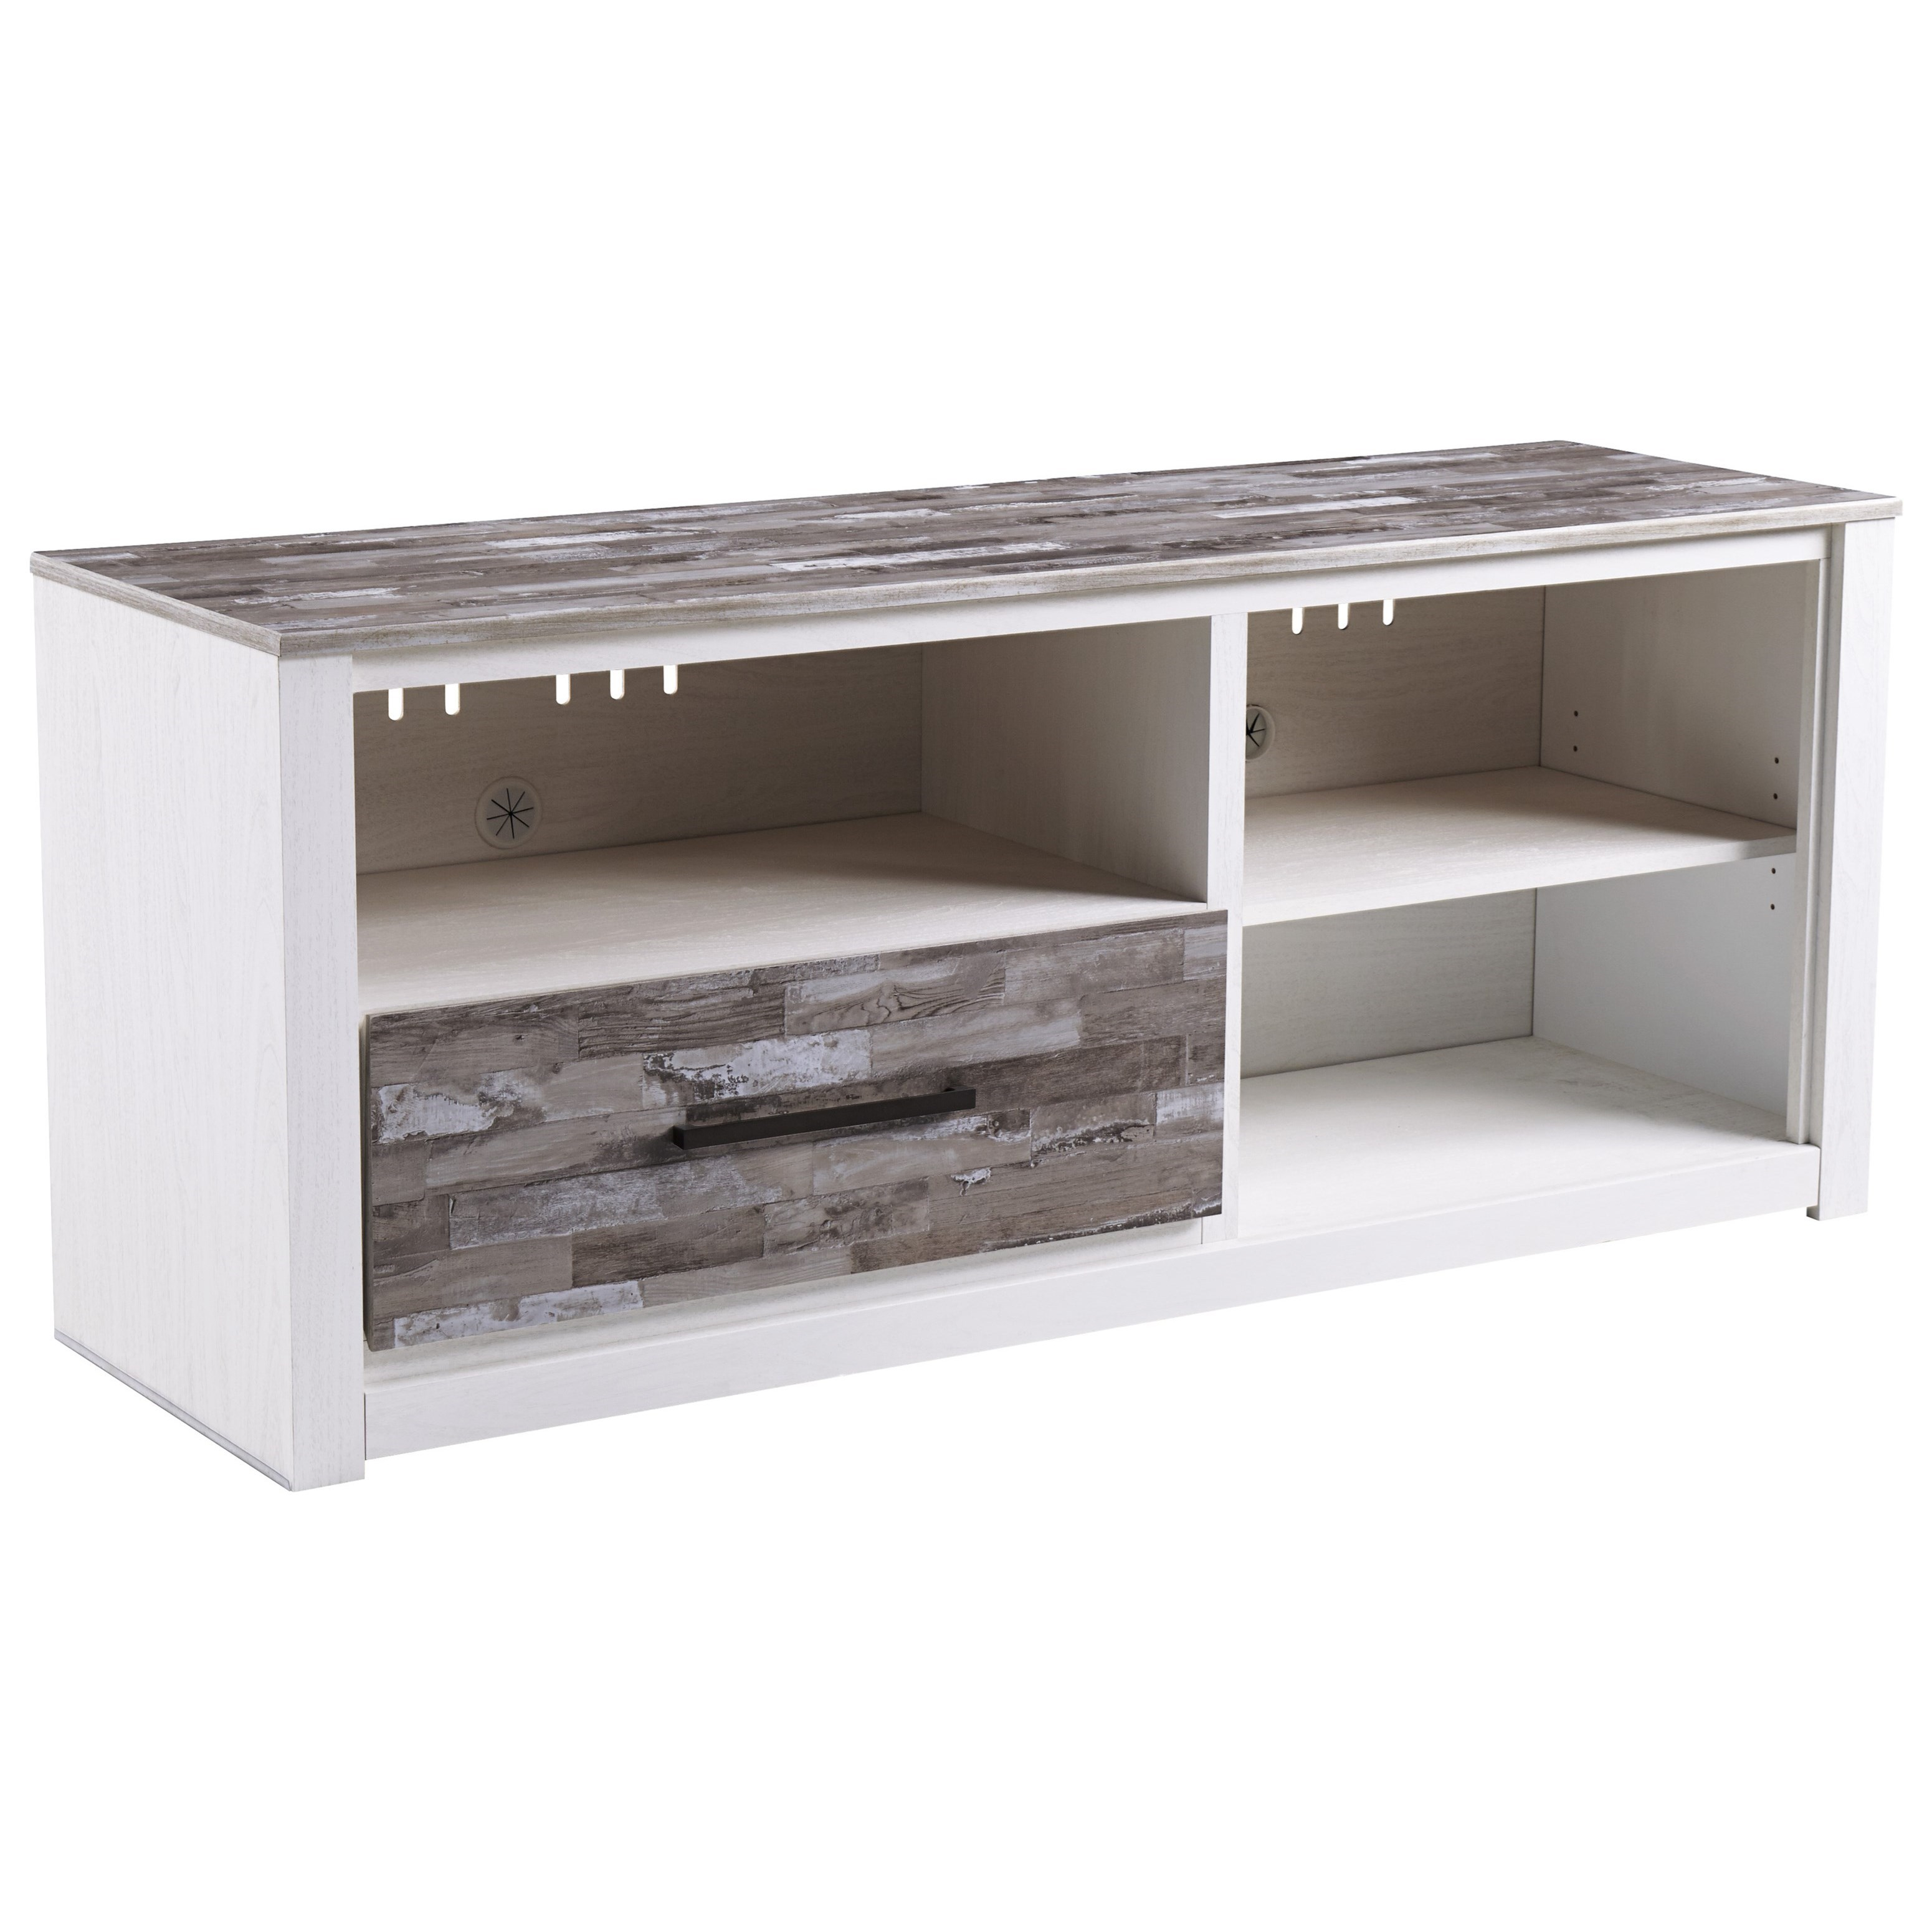 Large TV Stand with Adjustable Shelf